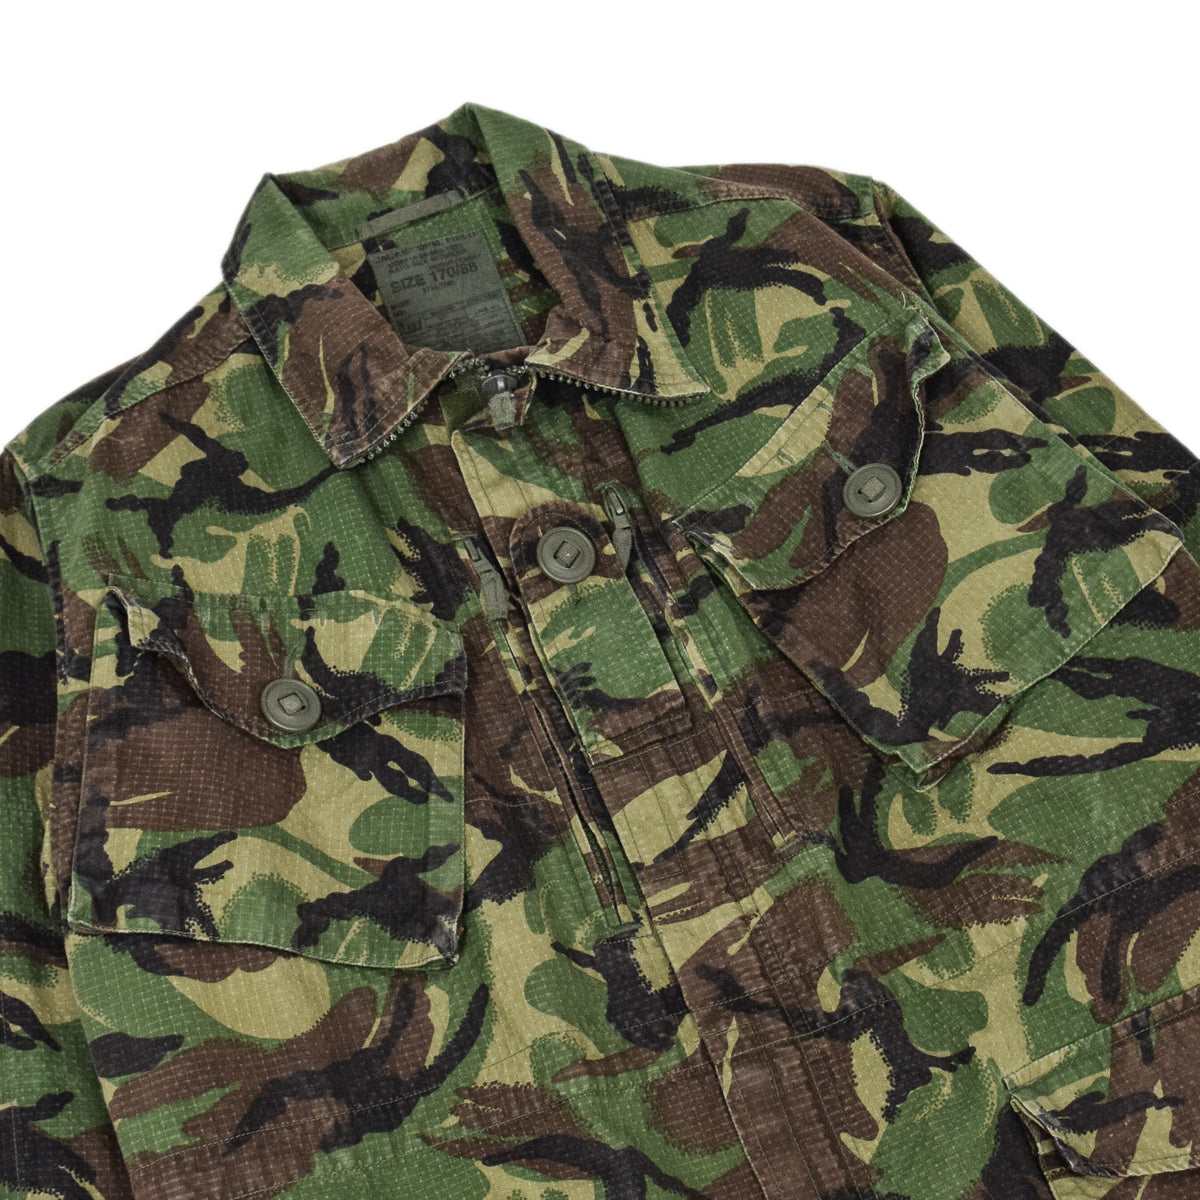 Vintage British Army Combat 95 Woodland Camouflage Coat Field Jacket M chest